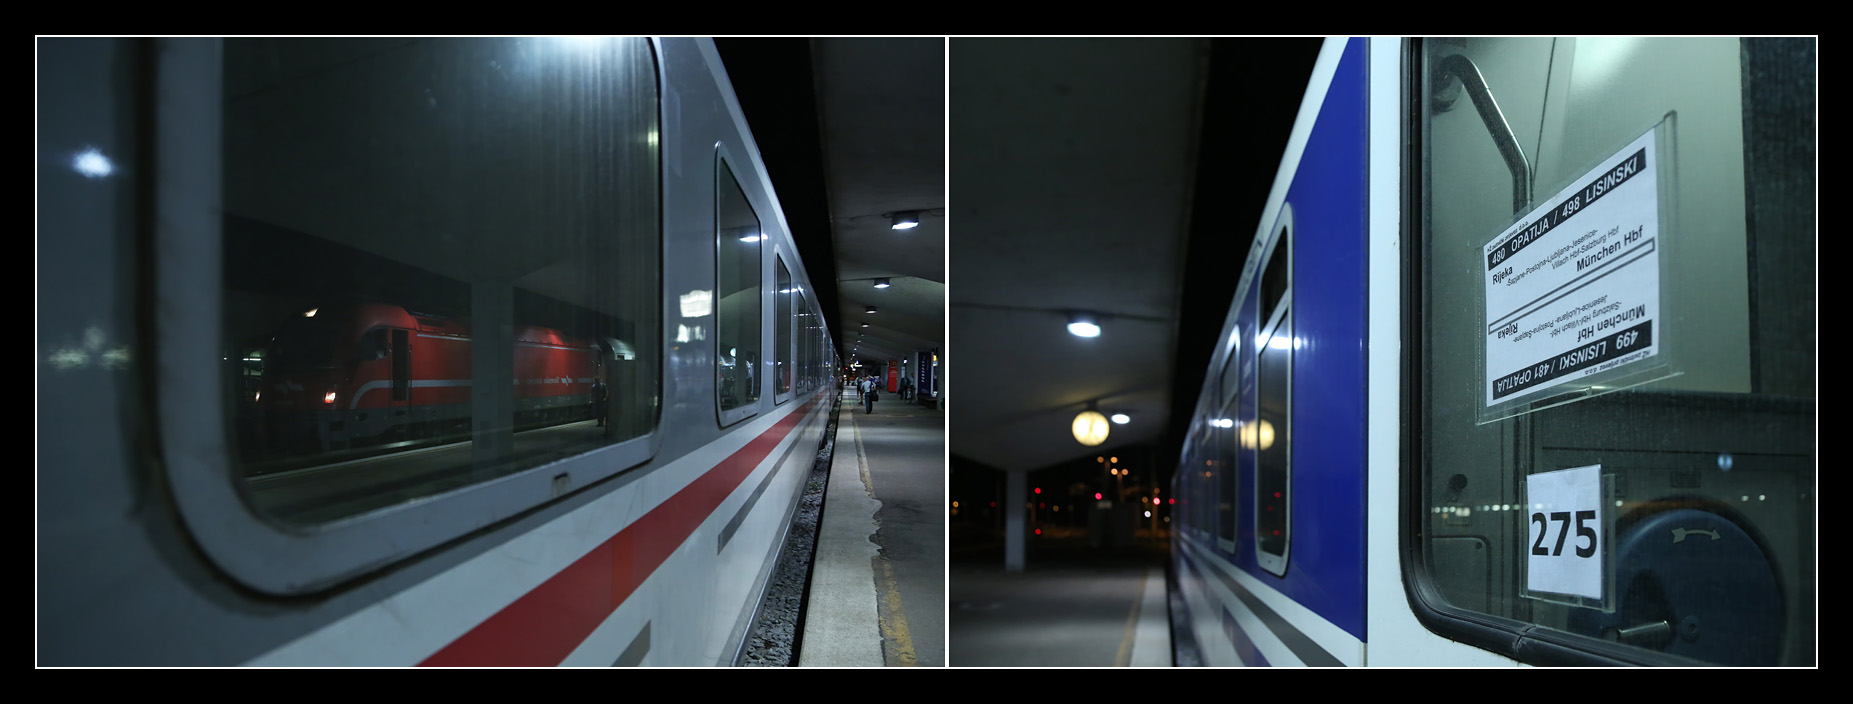 zagreb paris train